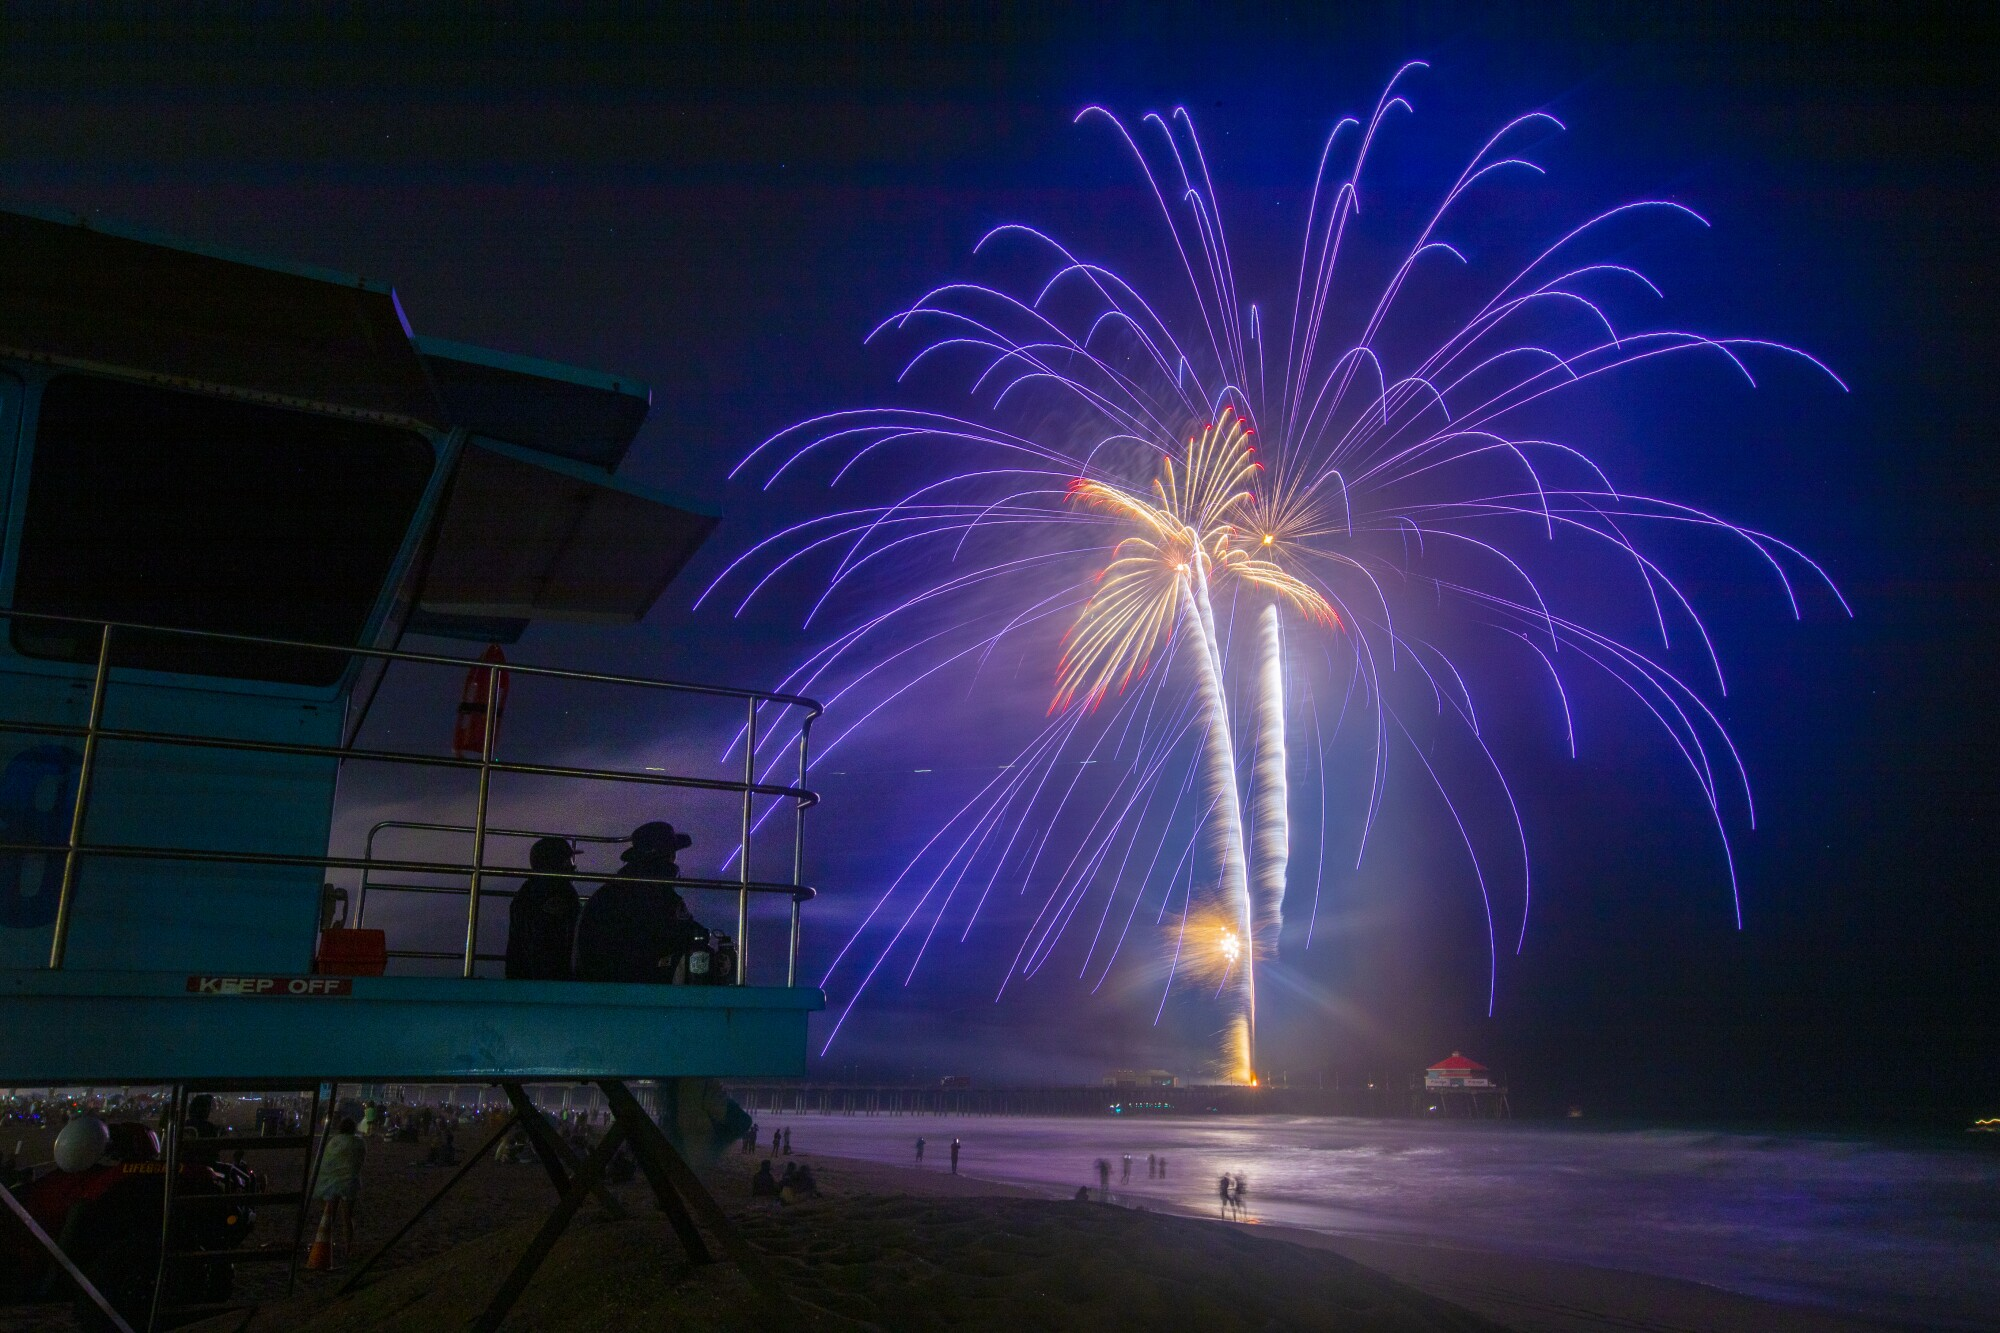 Lifeguards in a tower watch a shower of purple and yellow sparks from fireworks